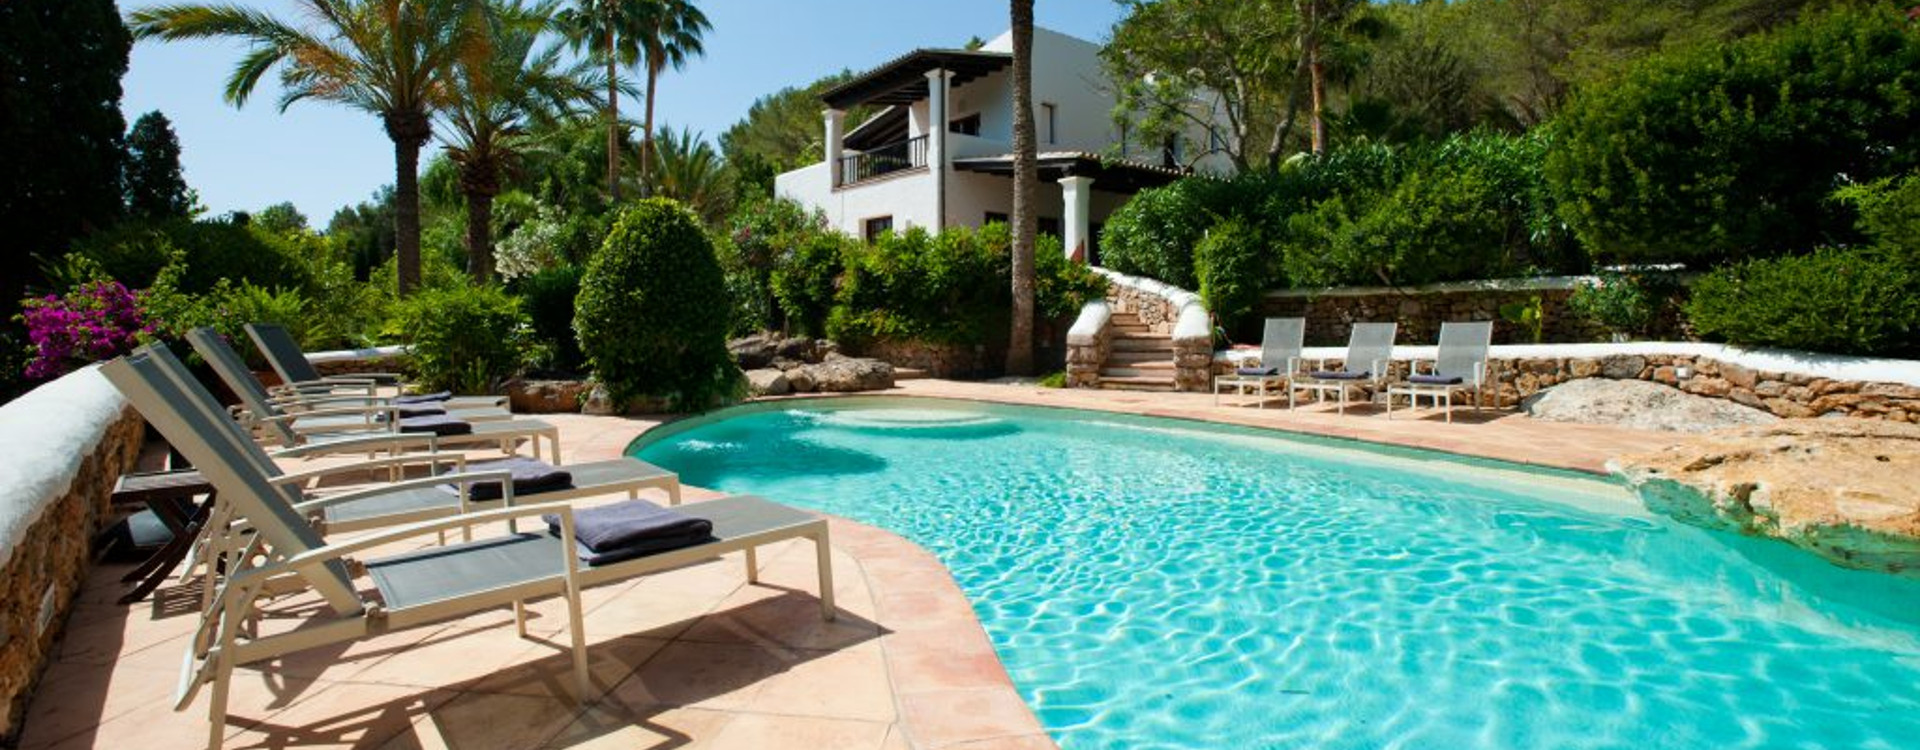 Ibiza coountry villa with private pool